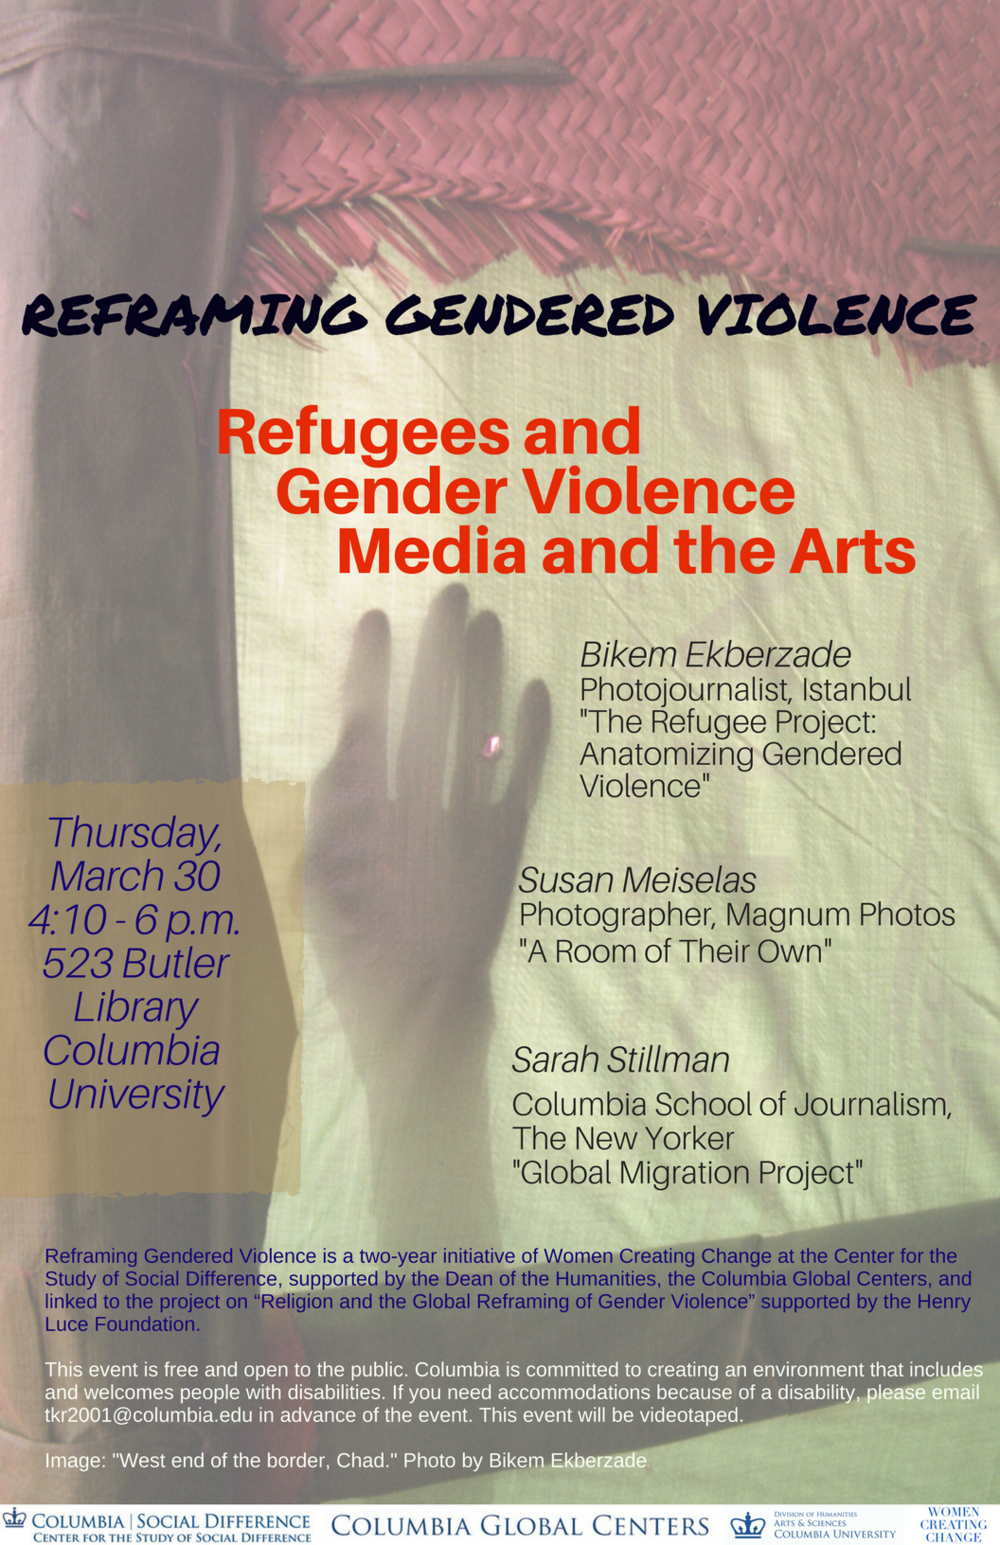 RGV Refugees Media Poster Final copy.png